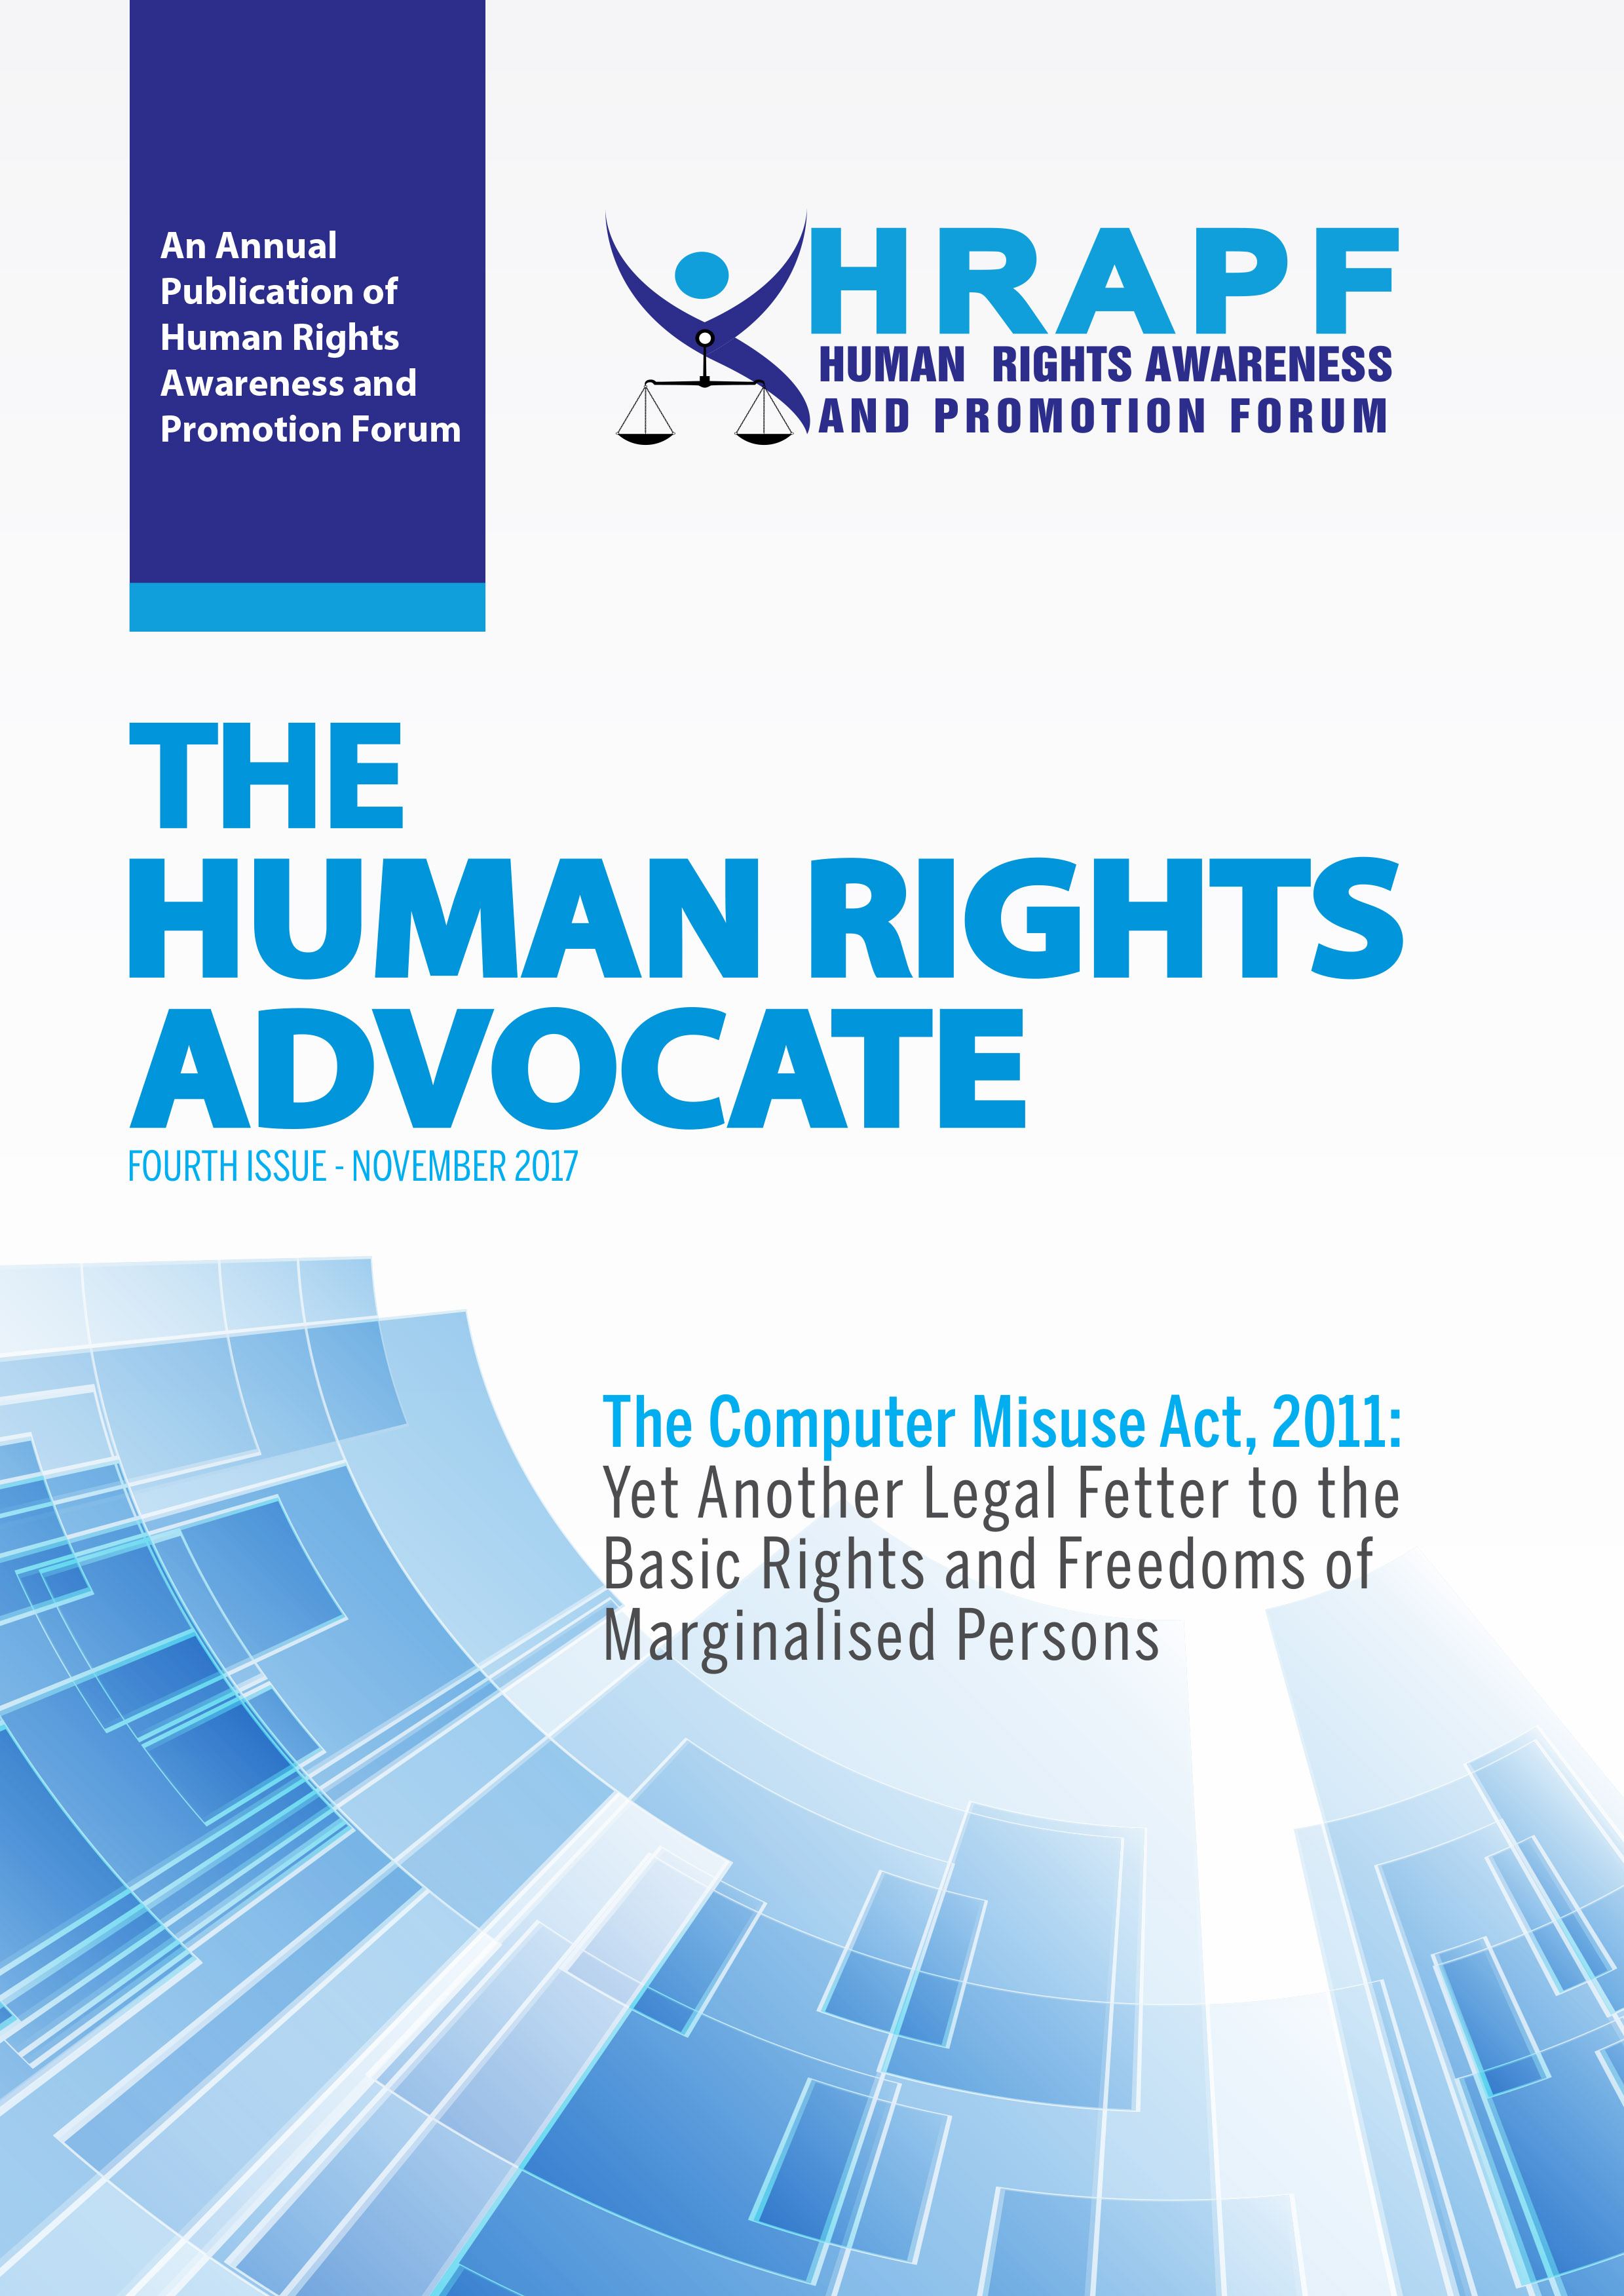 Fourth Issue of the Human Rights Advocate